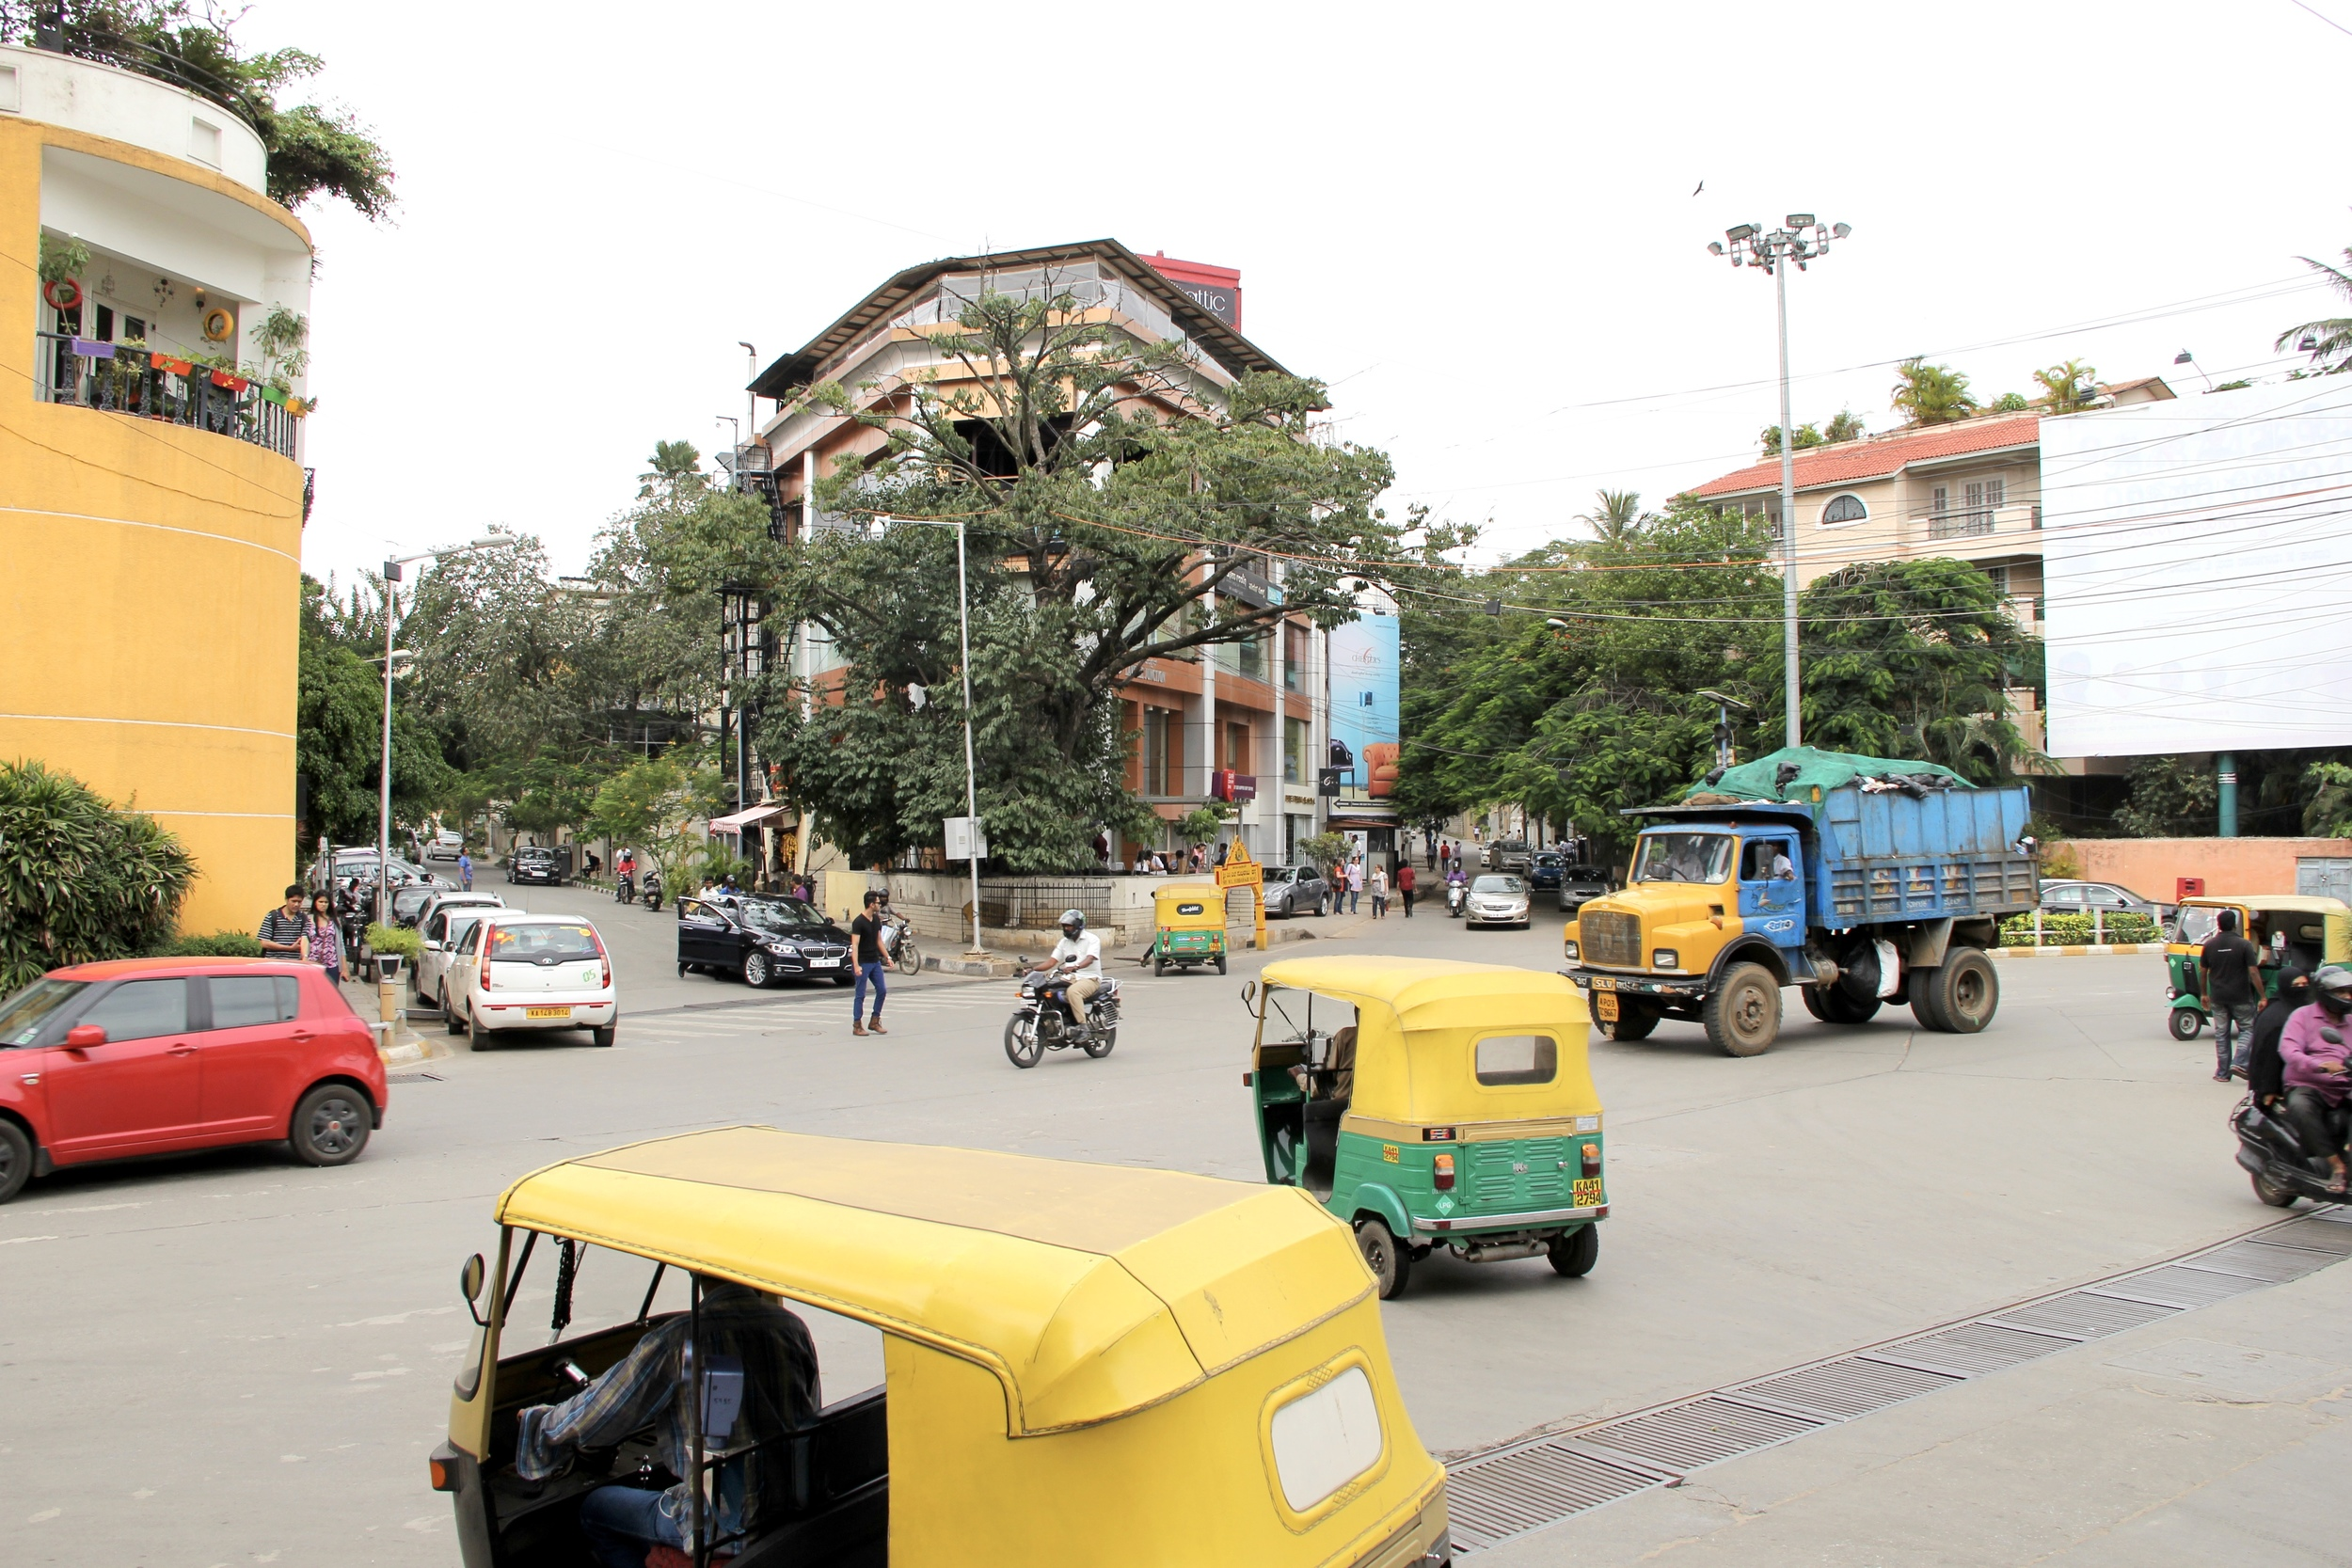 rickshaws criss cross an intersection in bangalore, india | beyond ordinary guides